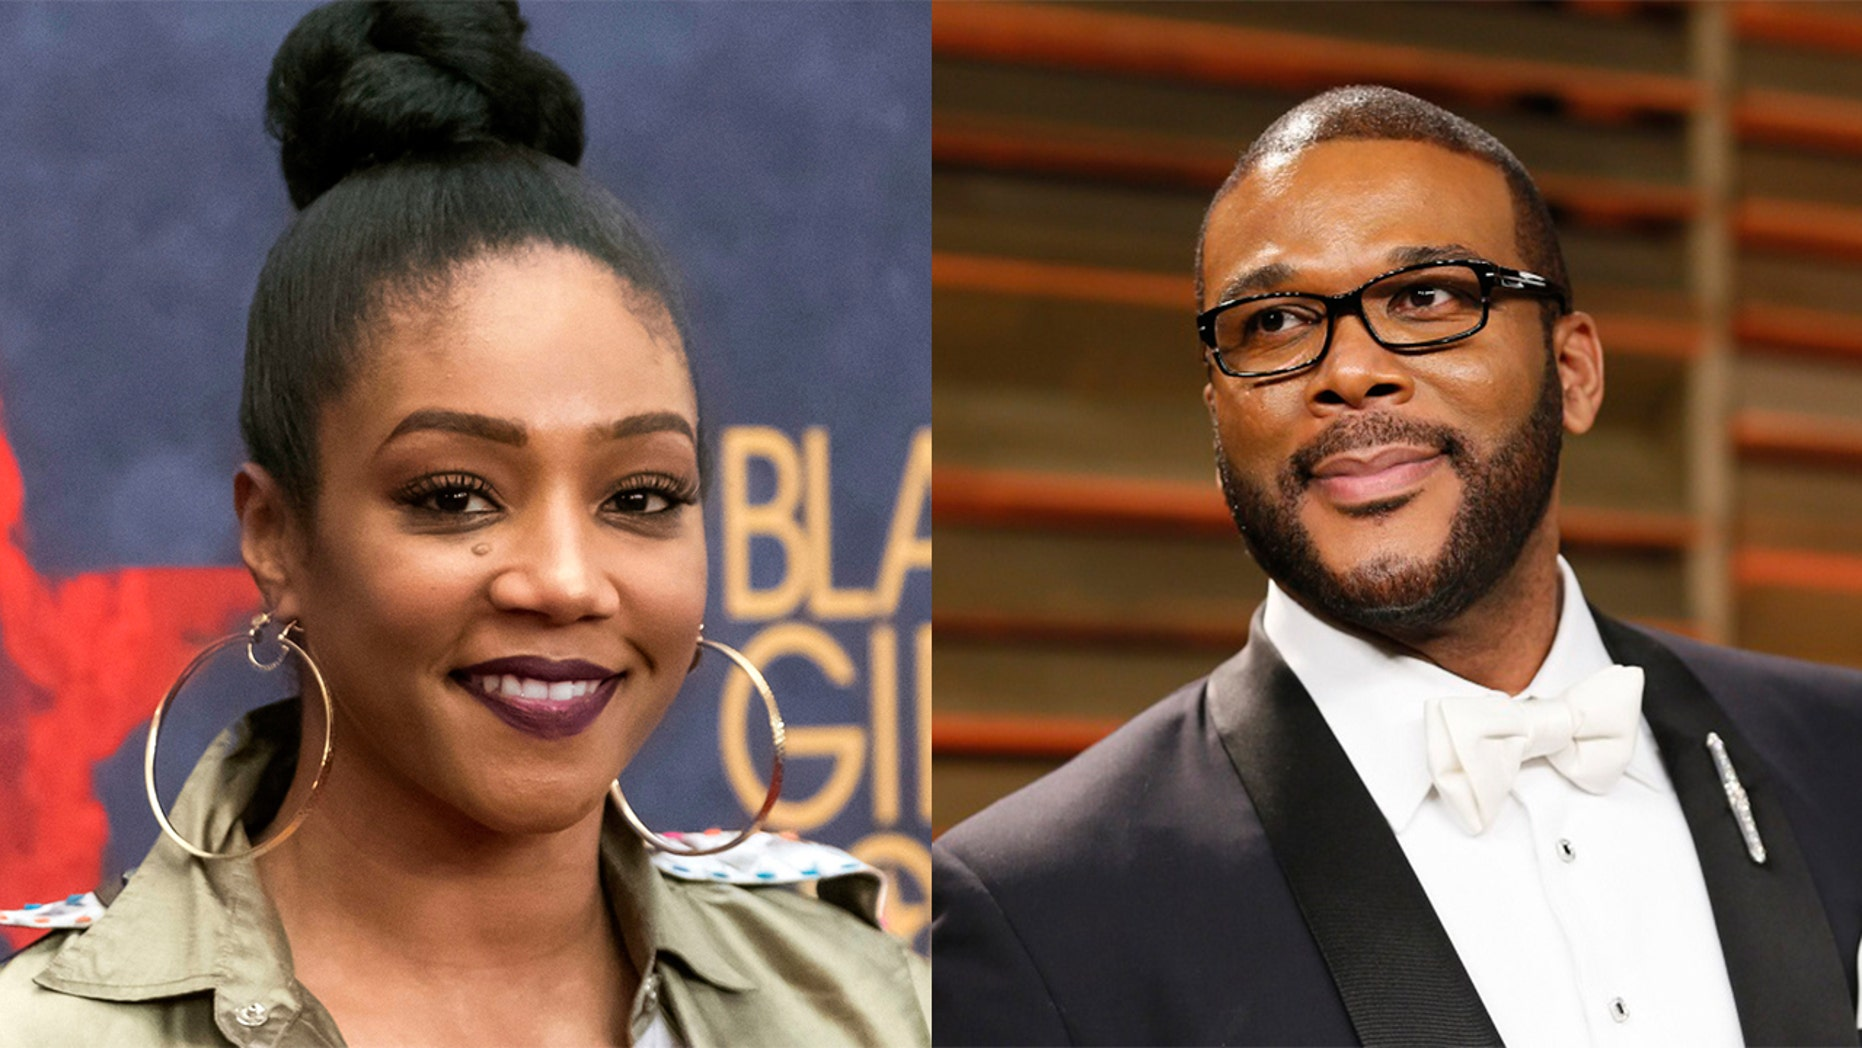 Tiffany Haddish revealed on Friday that Tyler Perry bought her a Tesla.